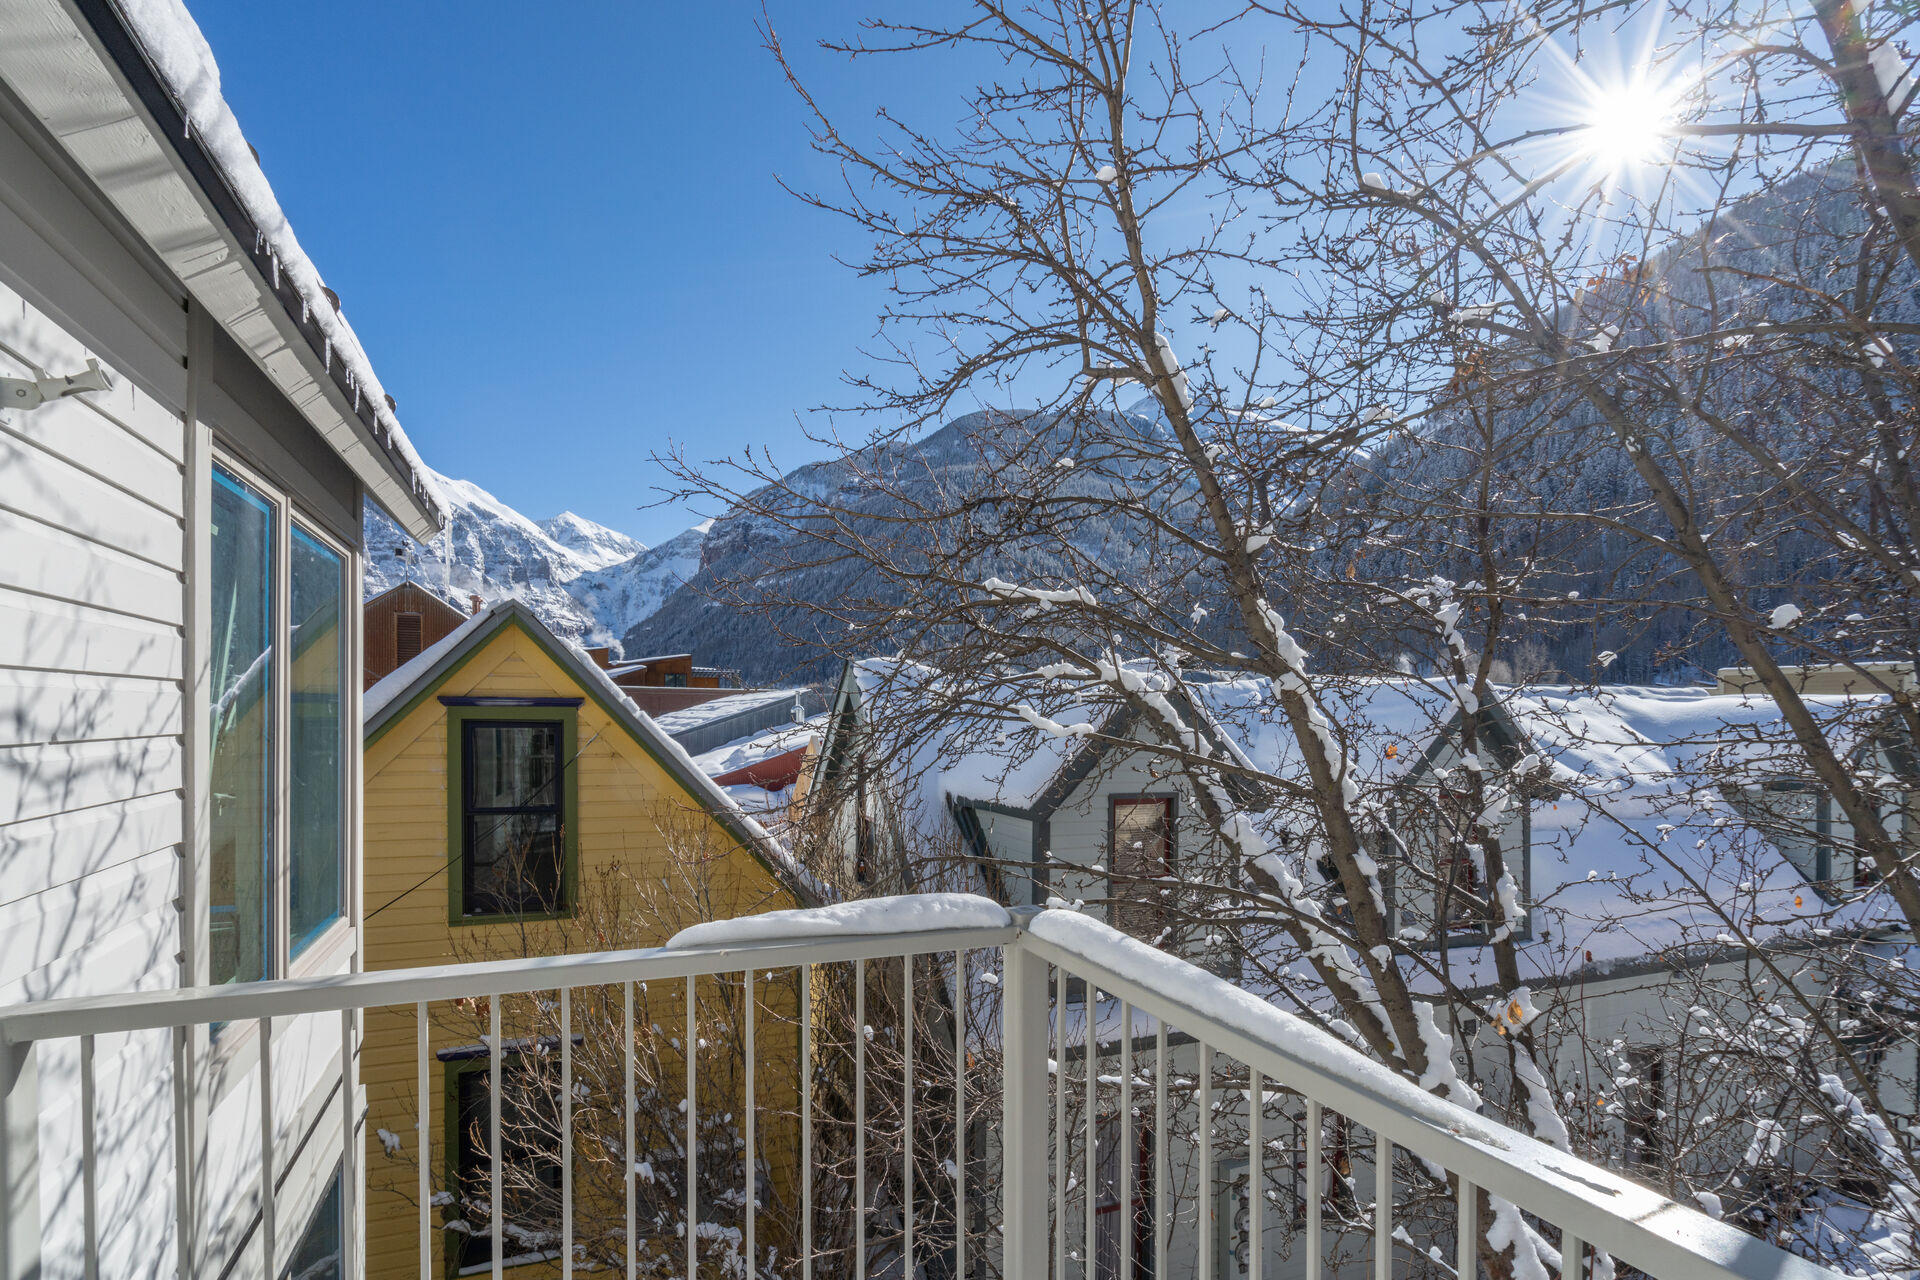 Poarch view from our Telluride vacation home rental